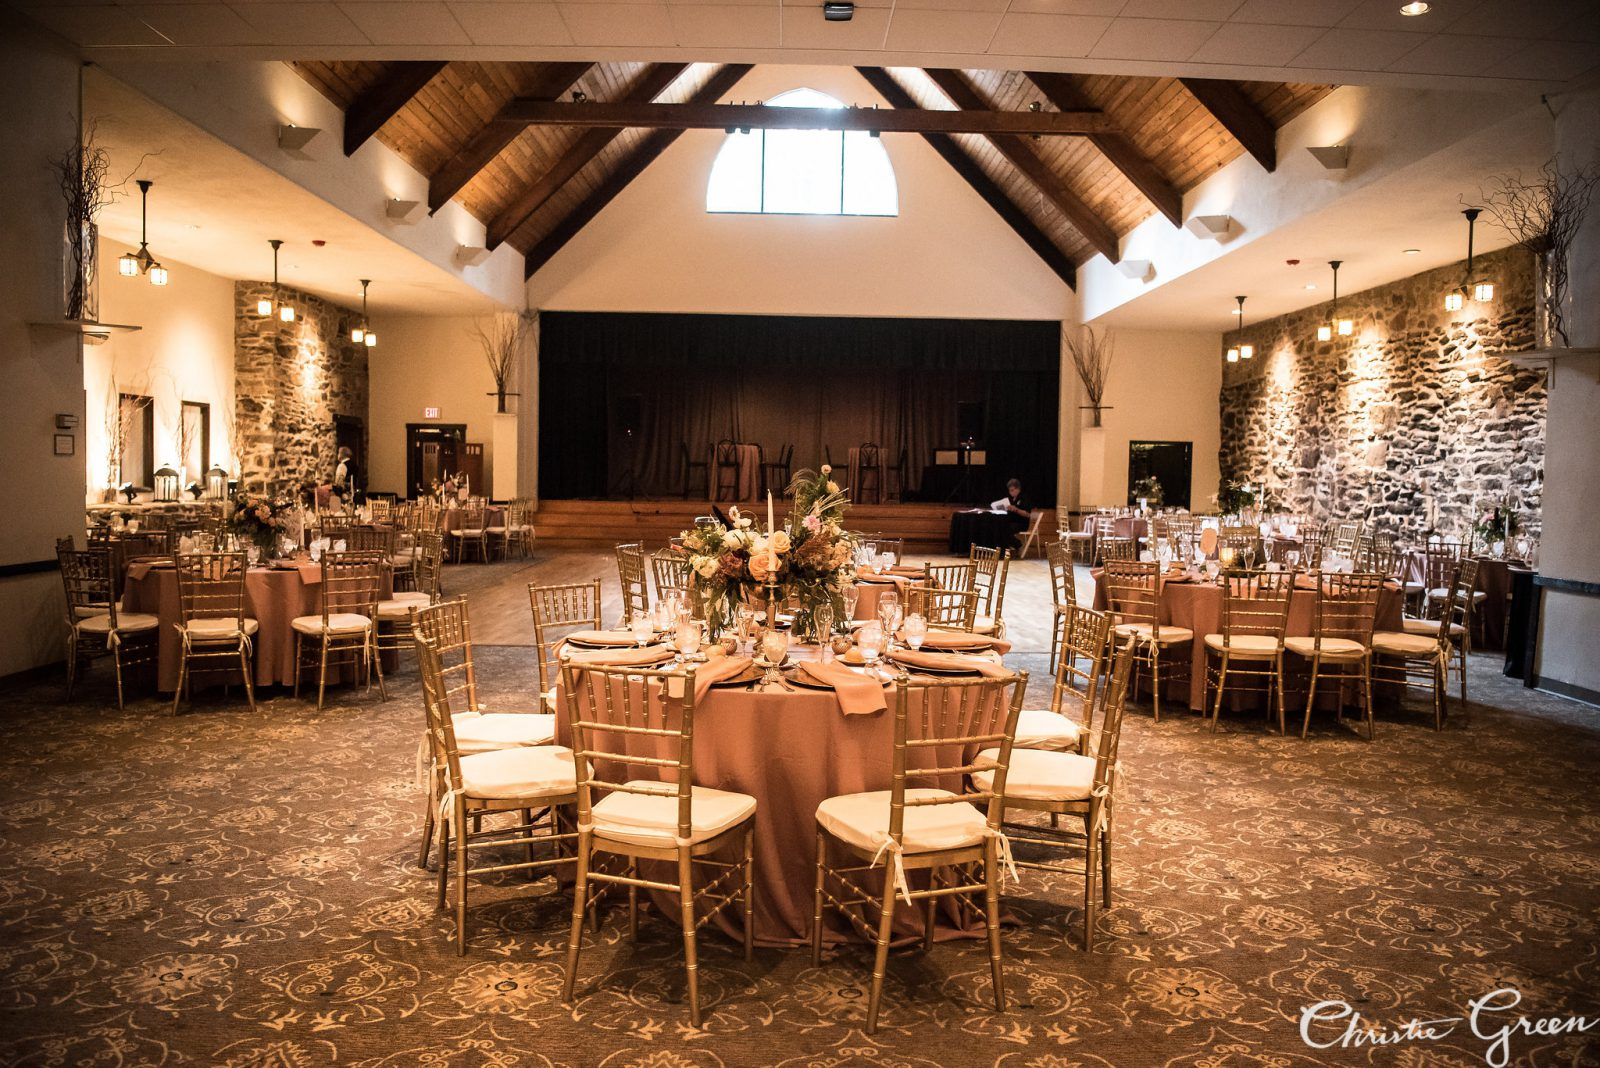 Round tables in blush linens and gold chiavari chairs set for wedding reception in the Ballroom at The Old Mill. Flowers by Fresh Designs Florist. Photo by Christie Green Photography